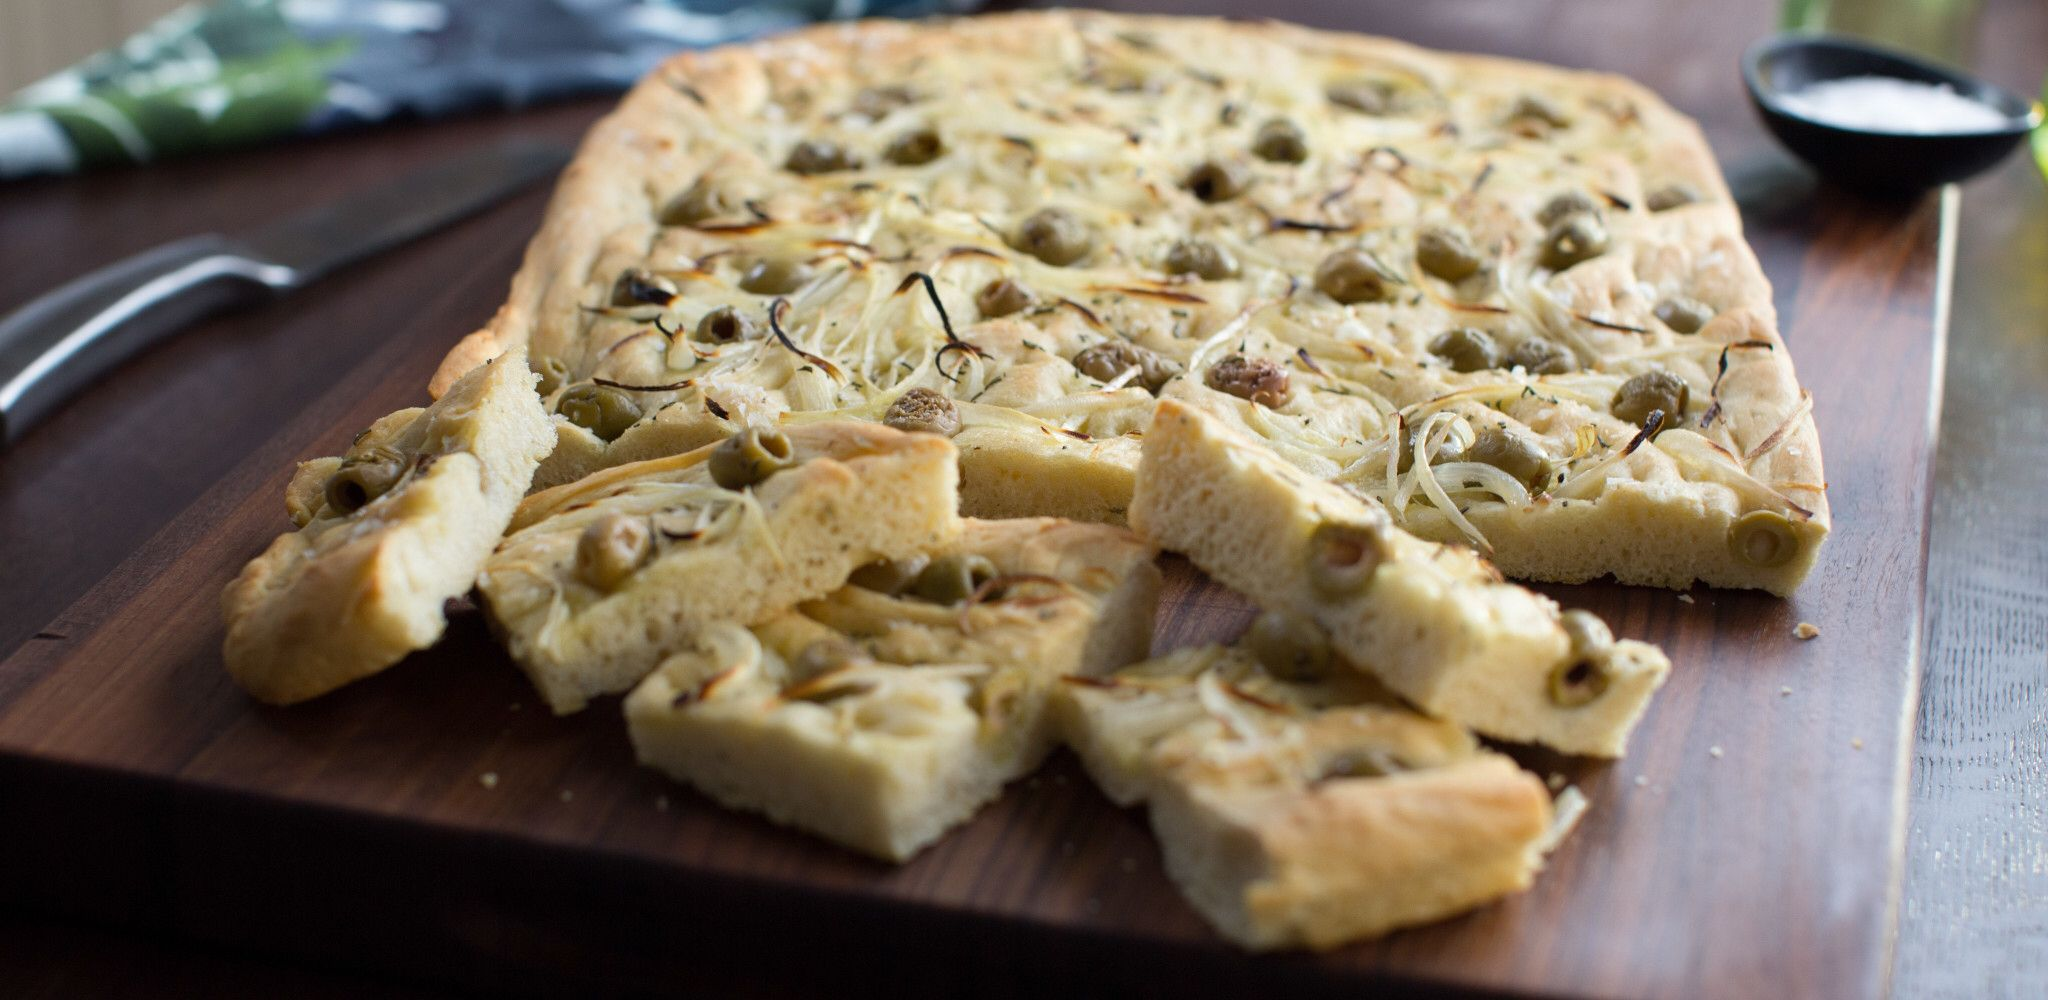 Olive And Rosemary Focaccia By Valerie Bertinelli In 2020 Food Network Recipes Rosemary Focaccia Focaccia